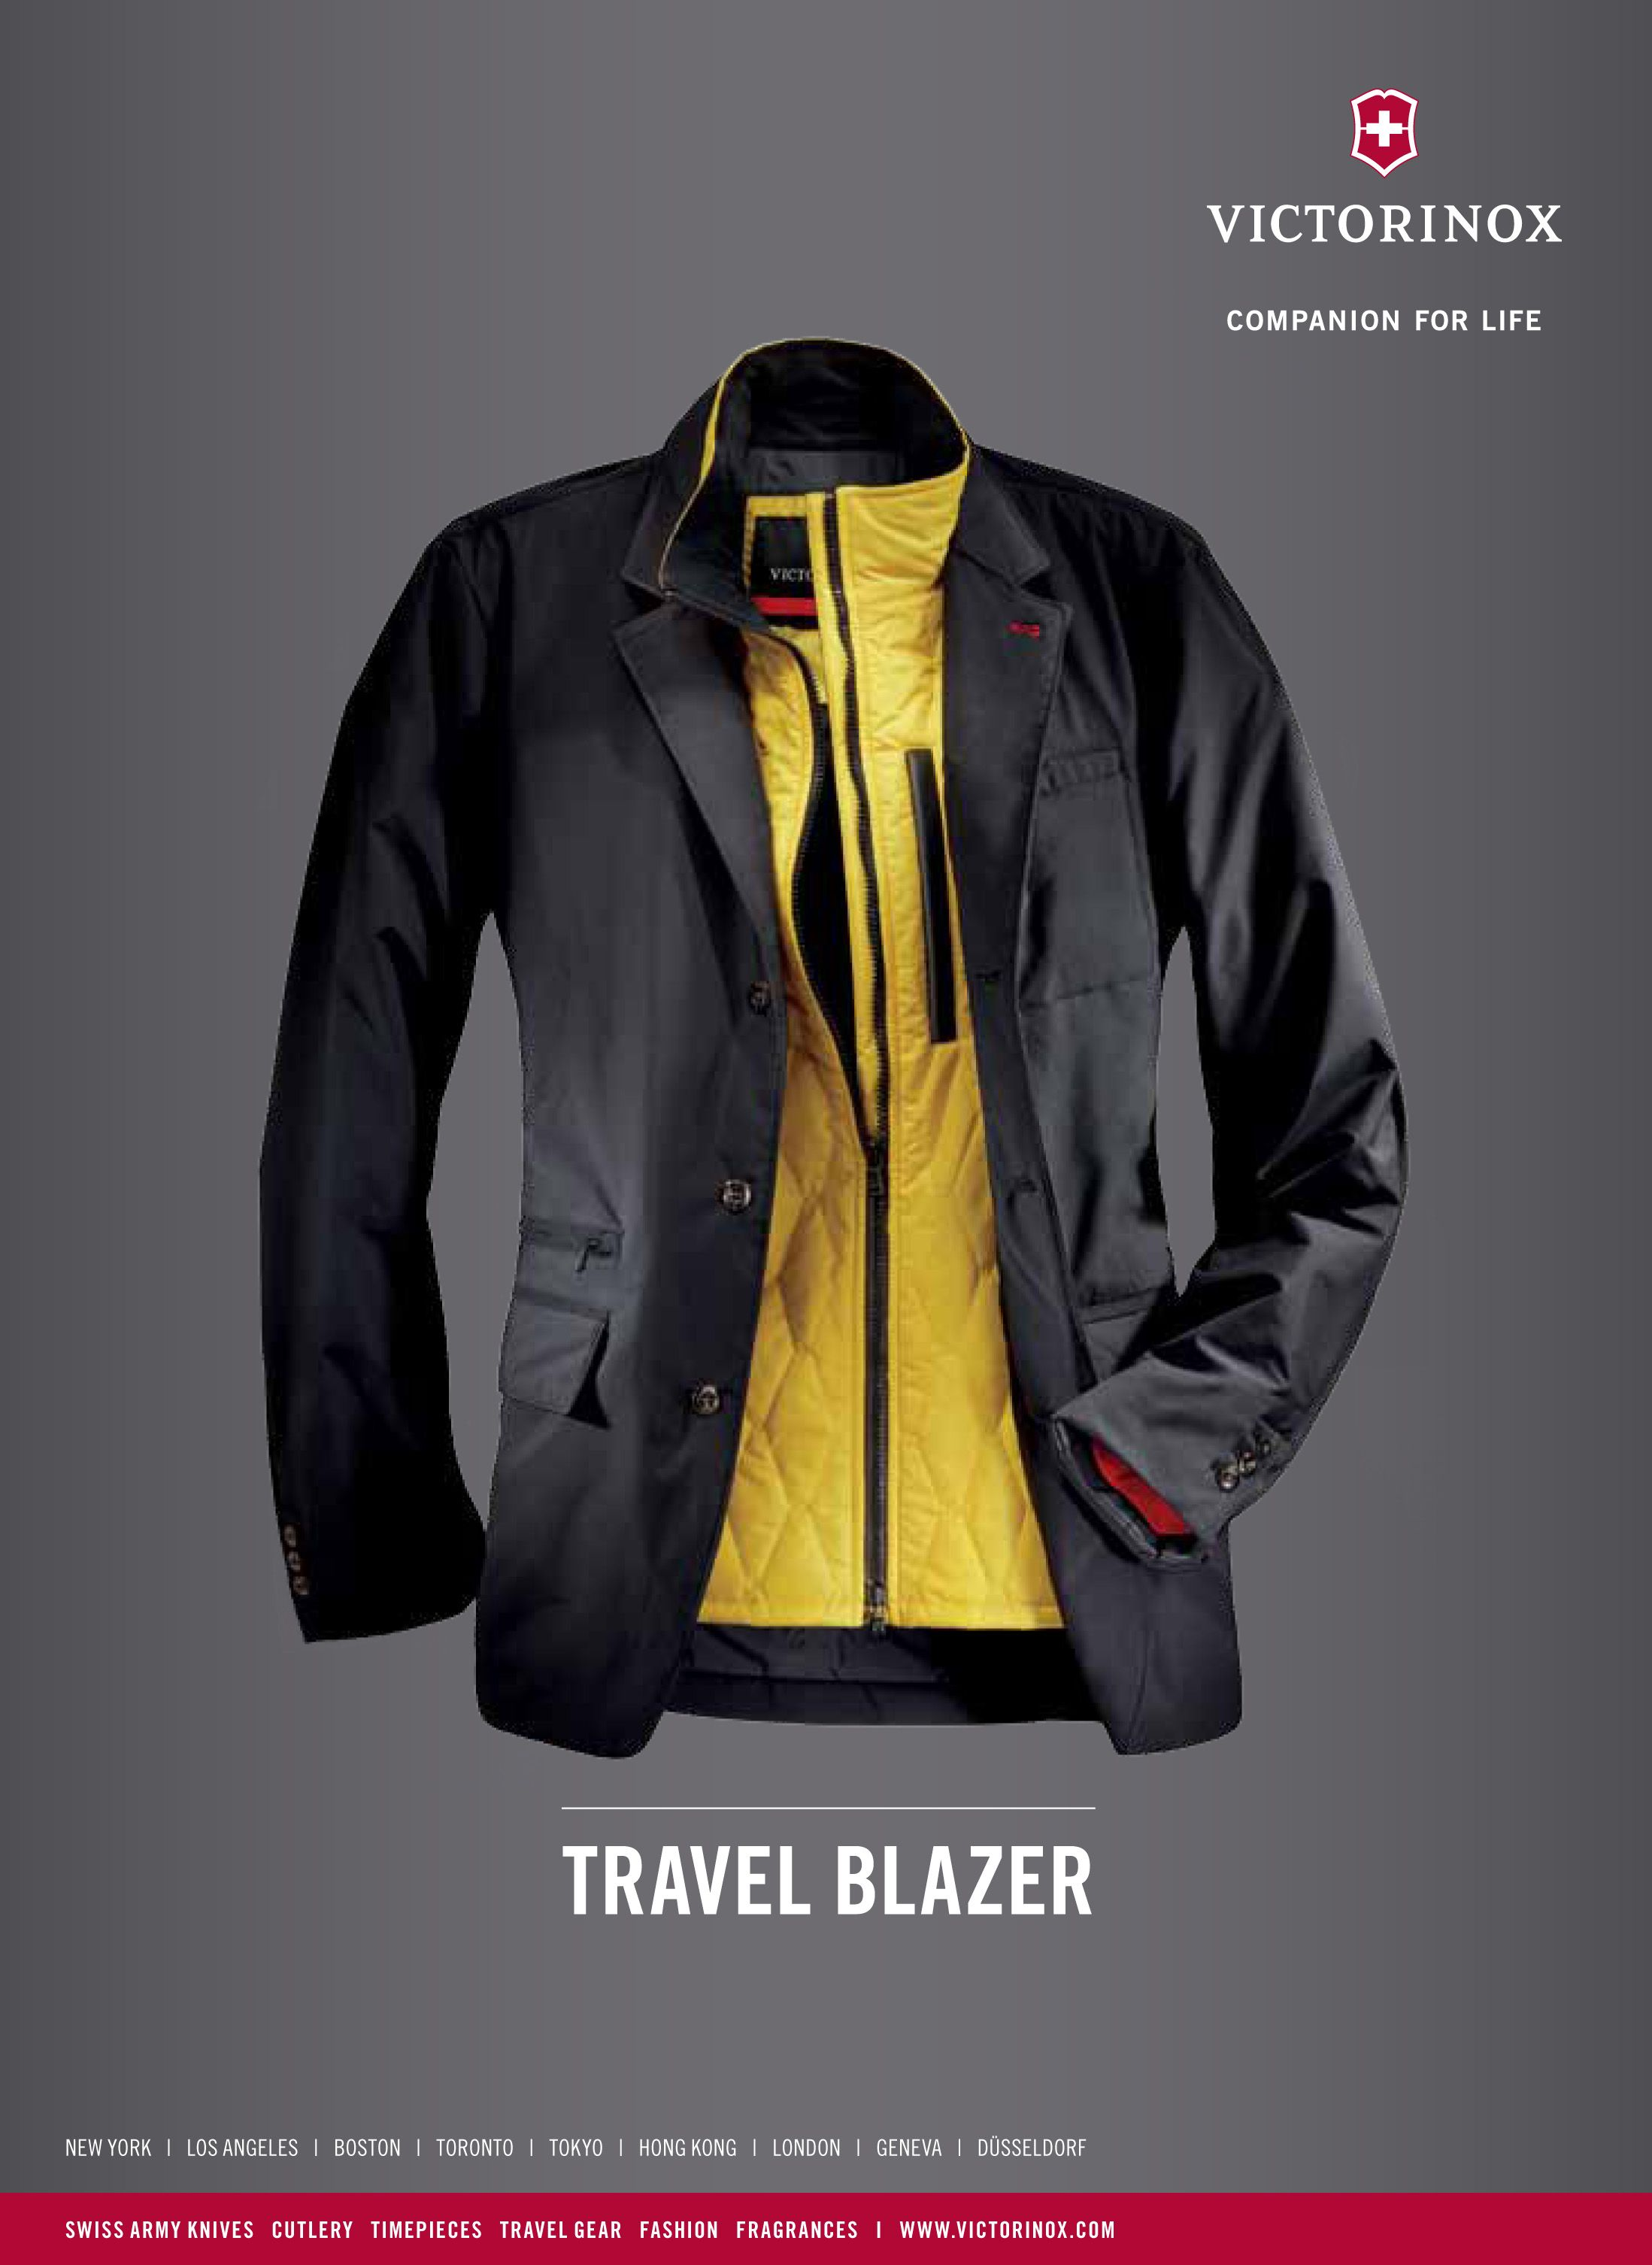 Victorinox Travel Blazer A Well Tied Tie Pinterest Travel Blazer Blazers And